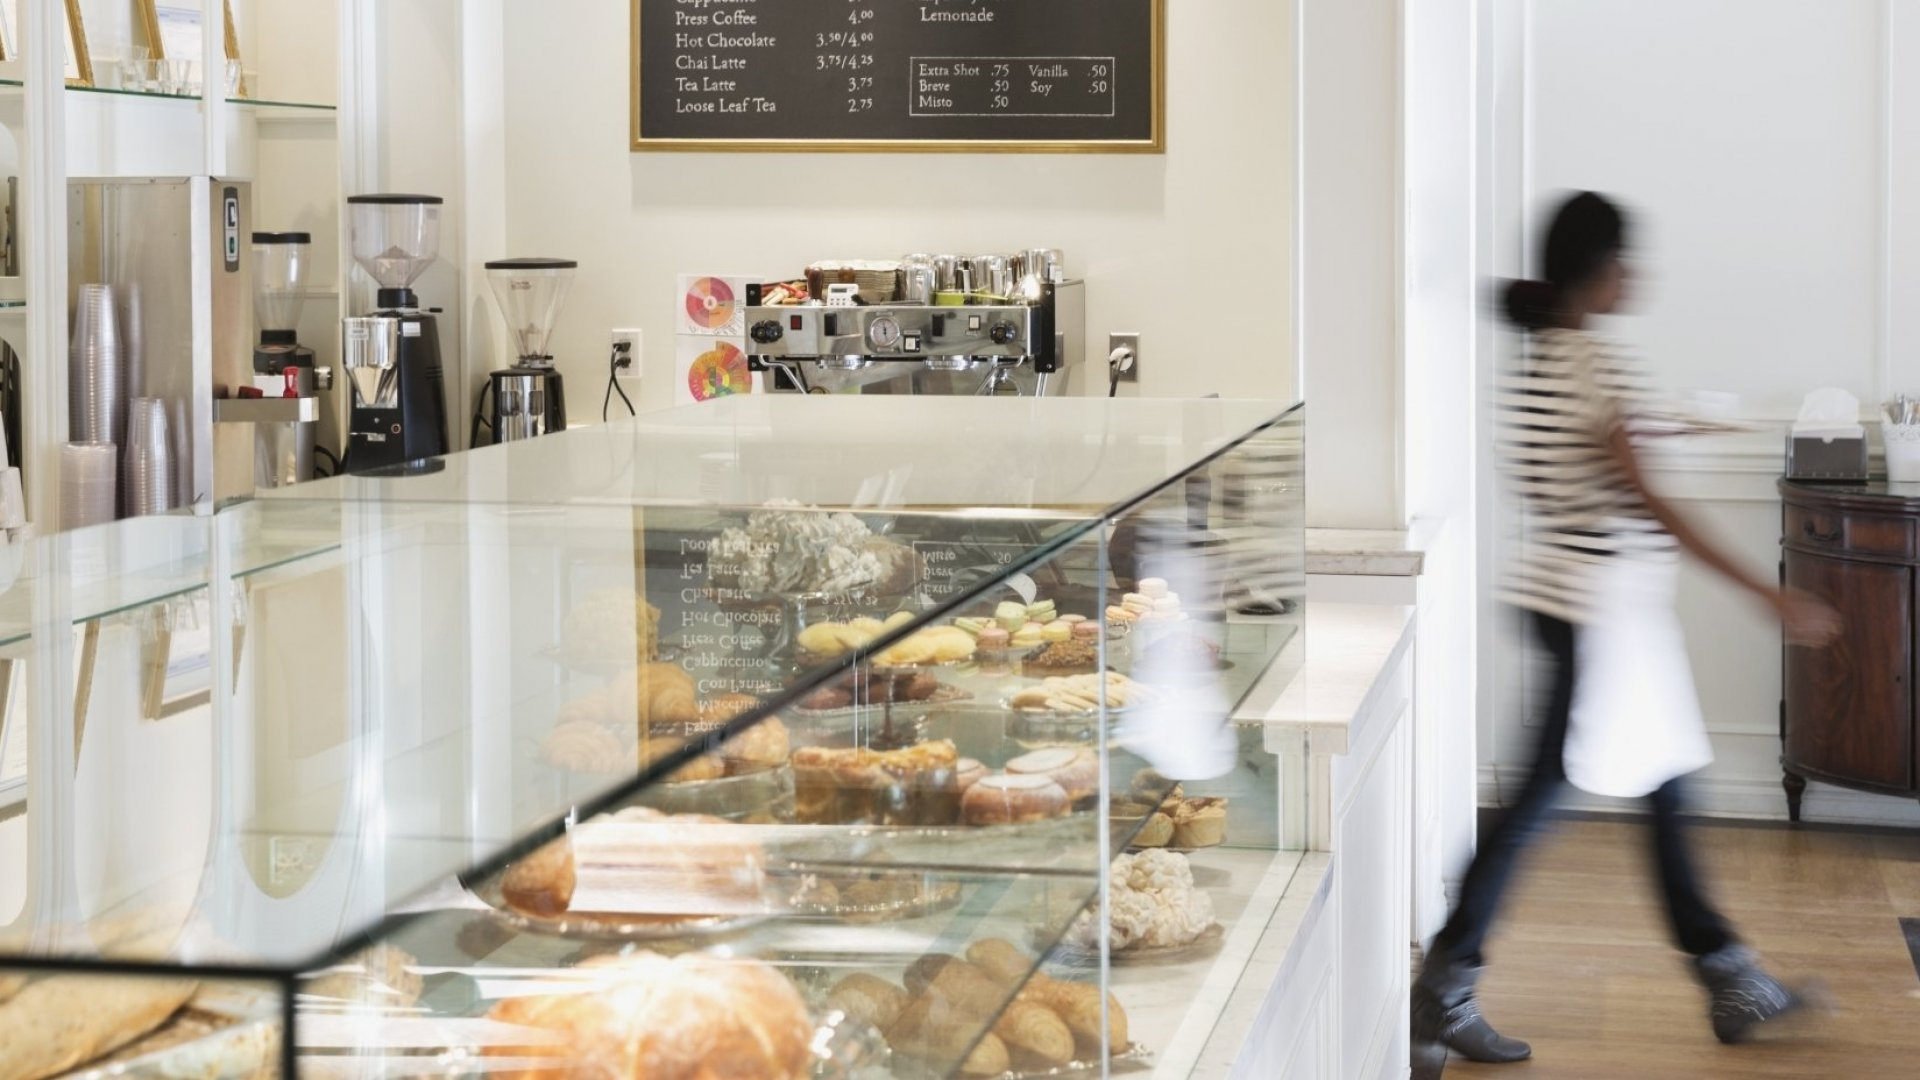 Want to Power Up Your Productivity? Neuroscience Says Leverage the 'Coffee Shop Effect'